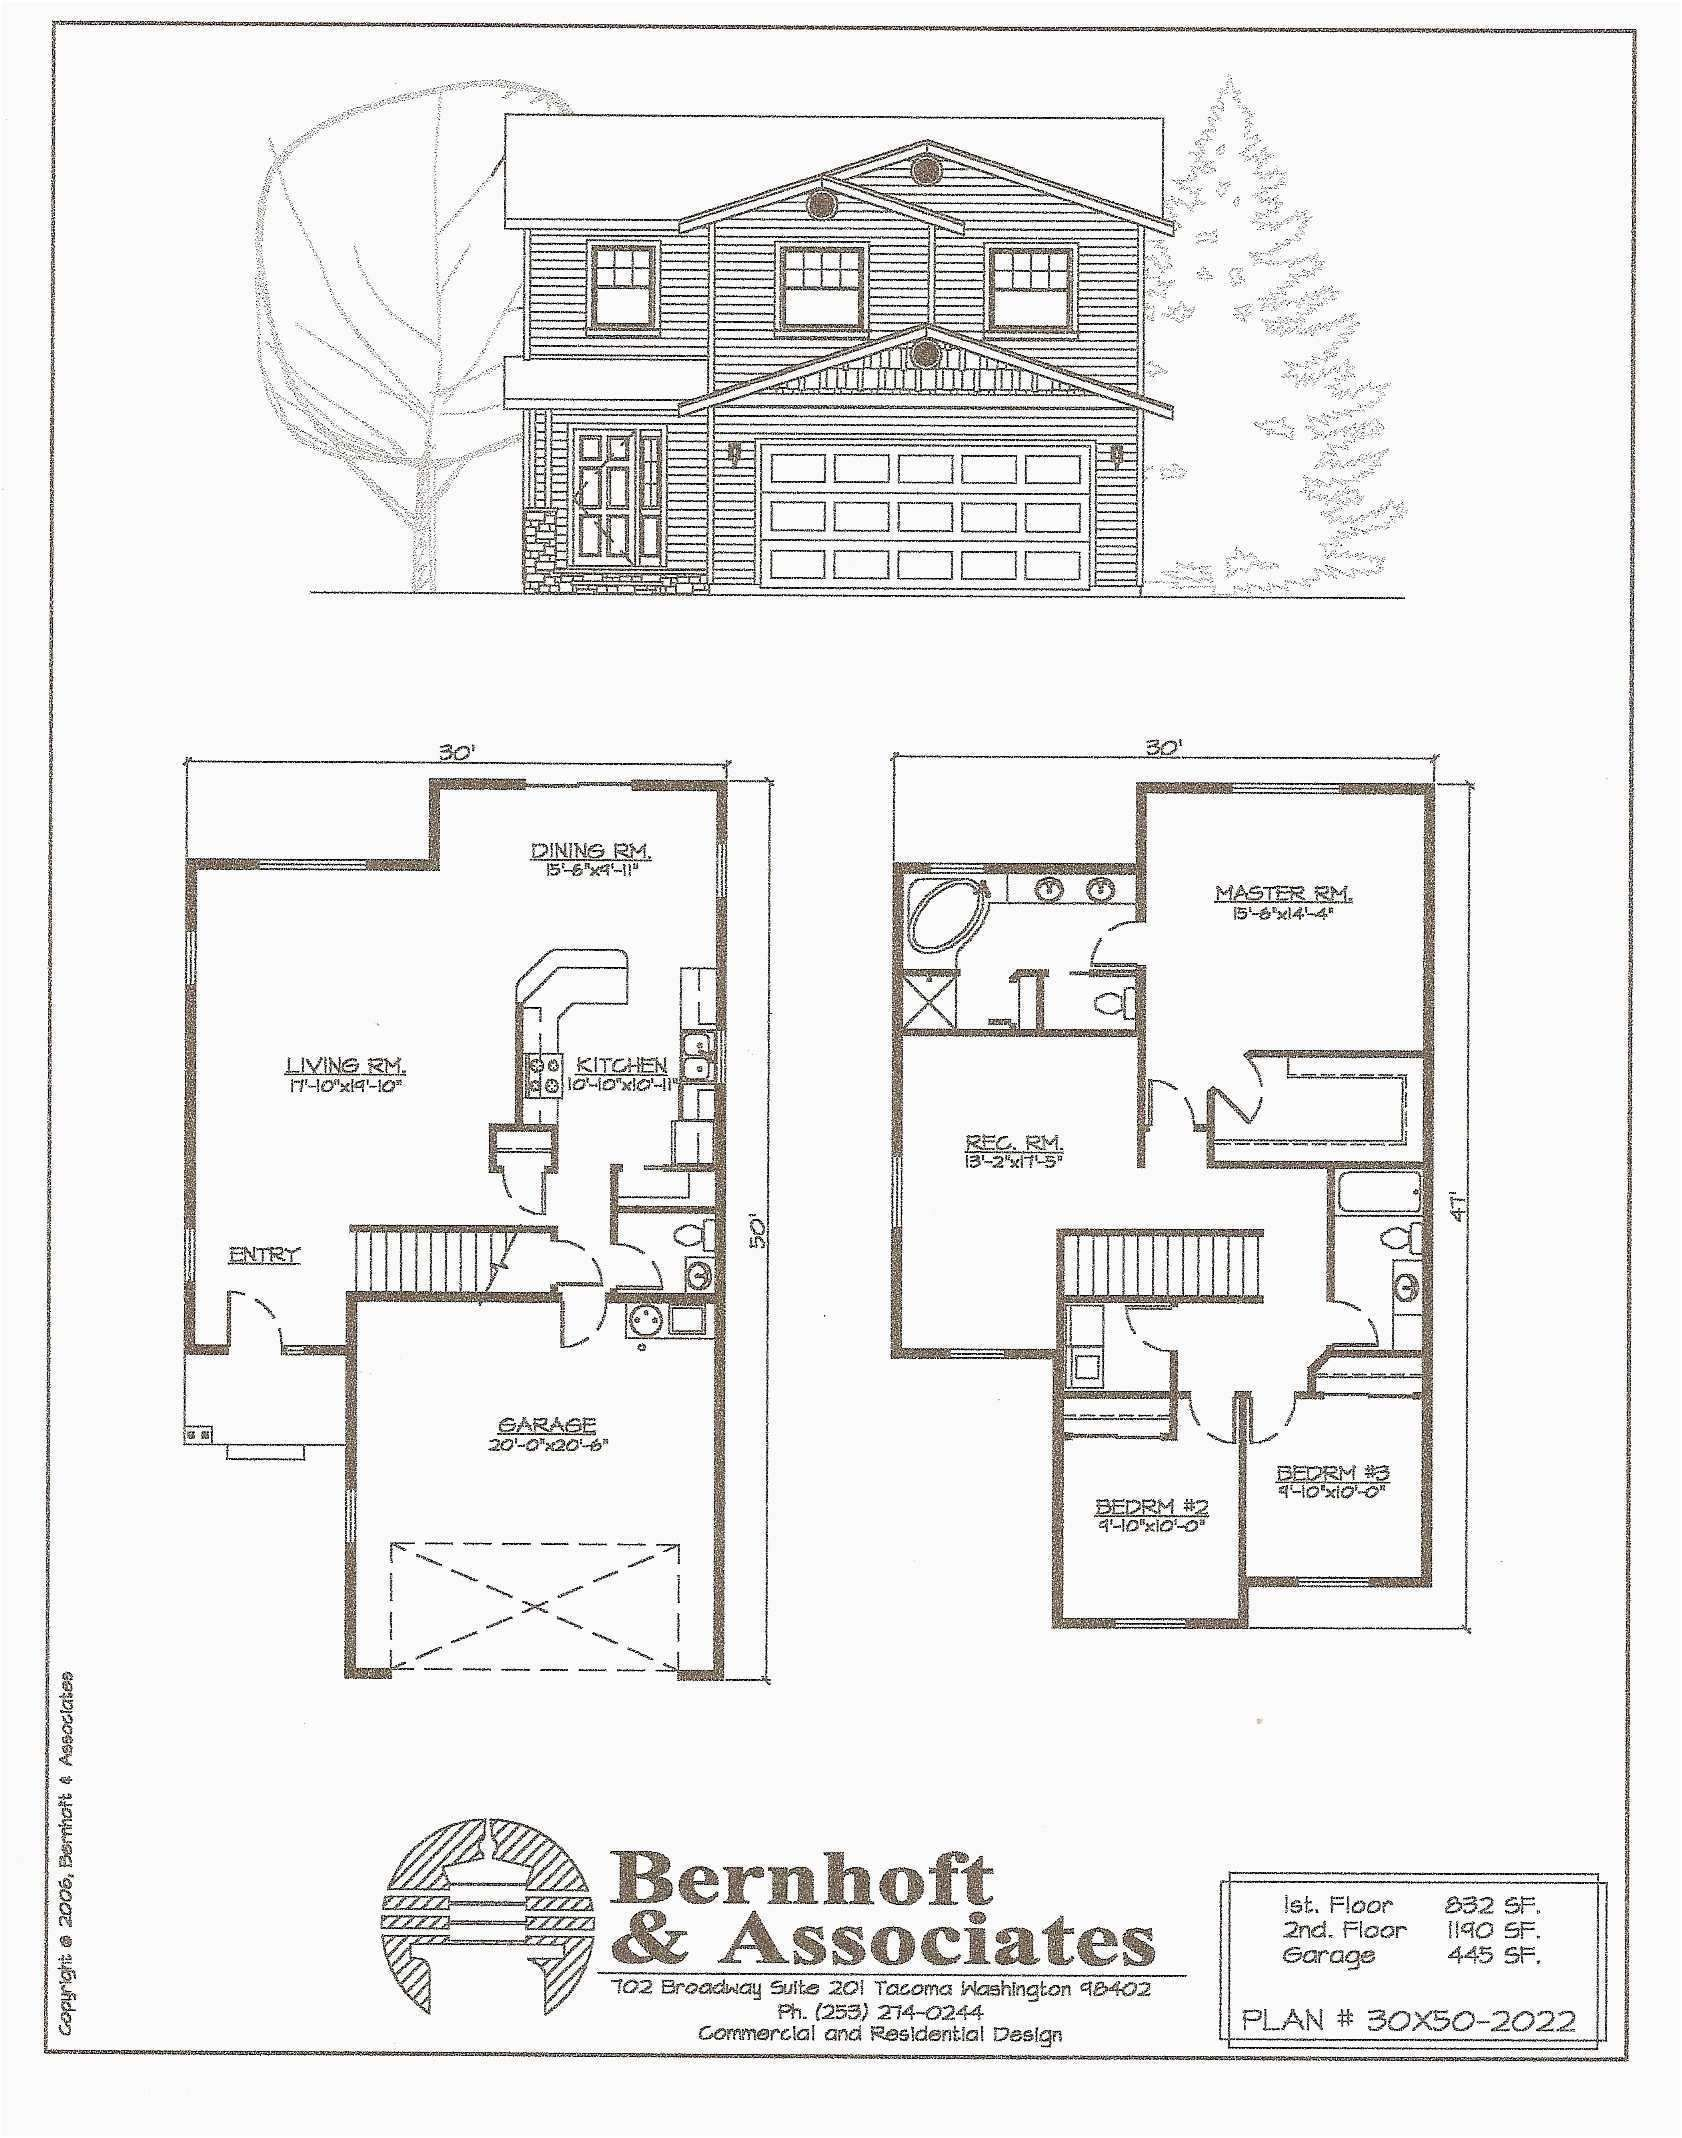 Inspiration For Cute Simple Mini Flower Tattoo Ideas New Small Easy Flowers To Draw Beautiful Flower Type Simple Floor Plans Shop House Plans Floor Plan Design